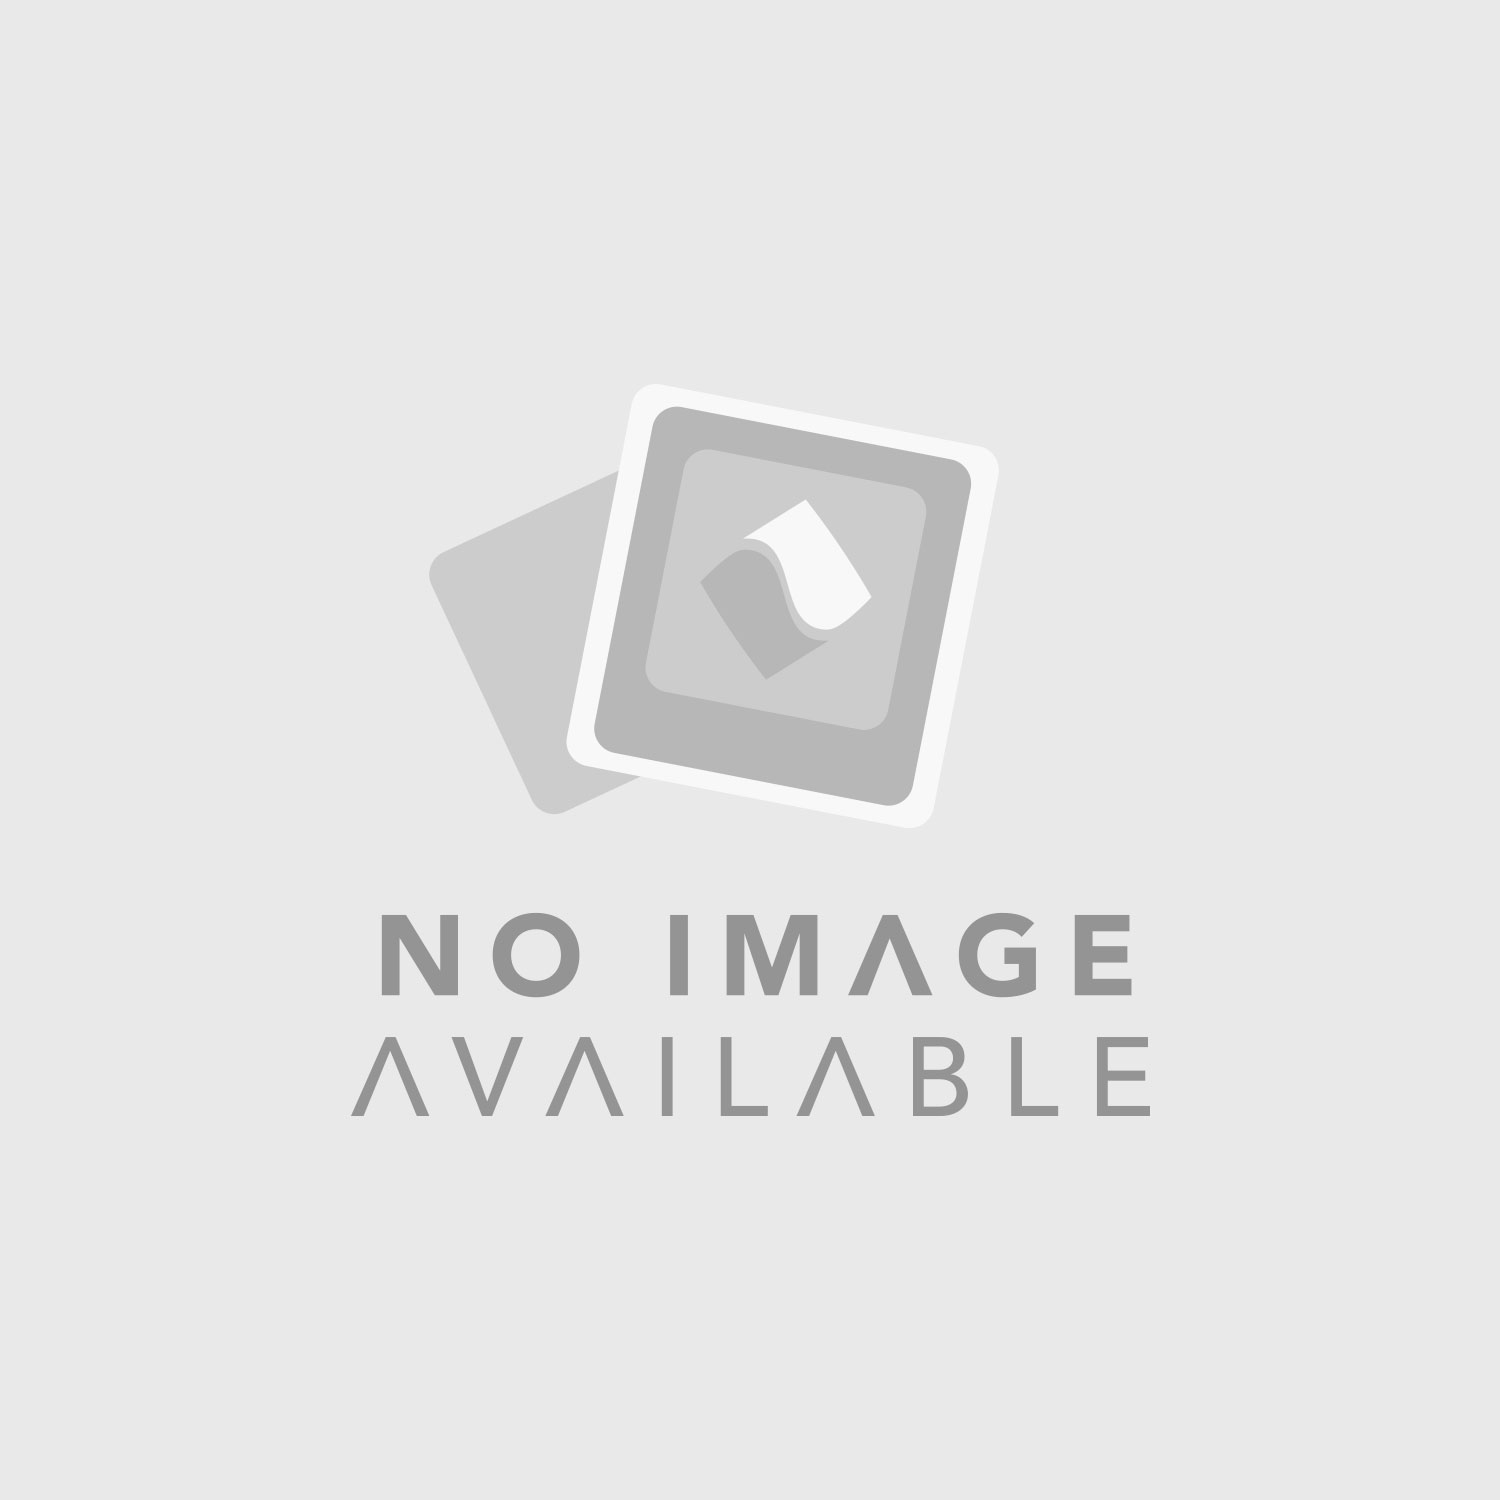 Strand Lighting 301 Series Lighting Control Console